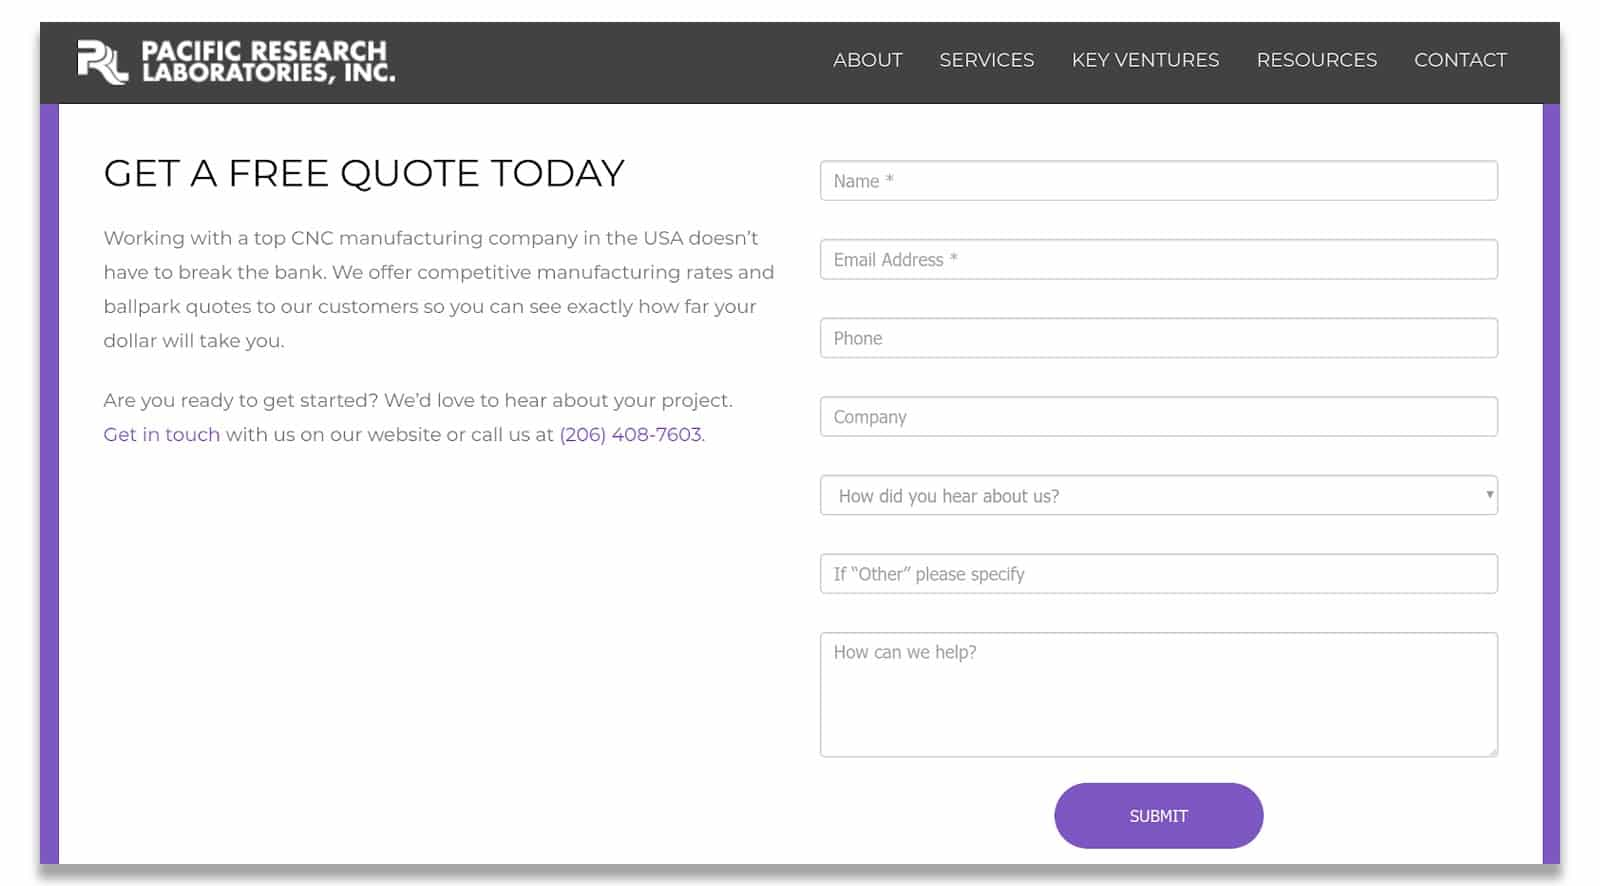 screenshot of a landing page with a form to complete to request a free quote on the side